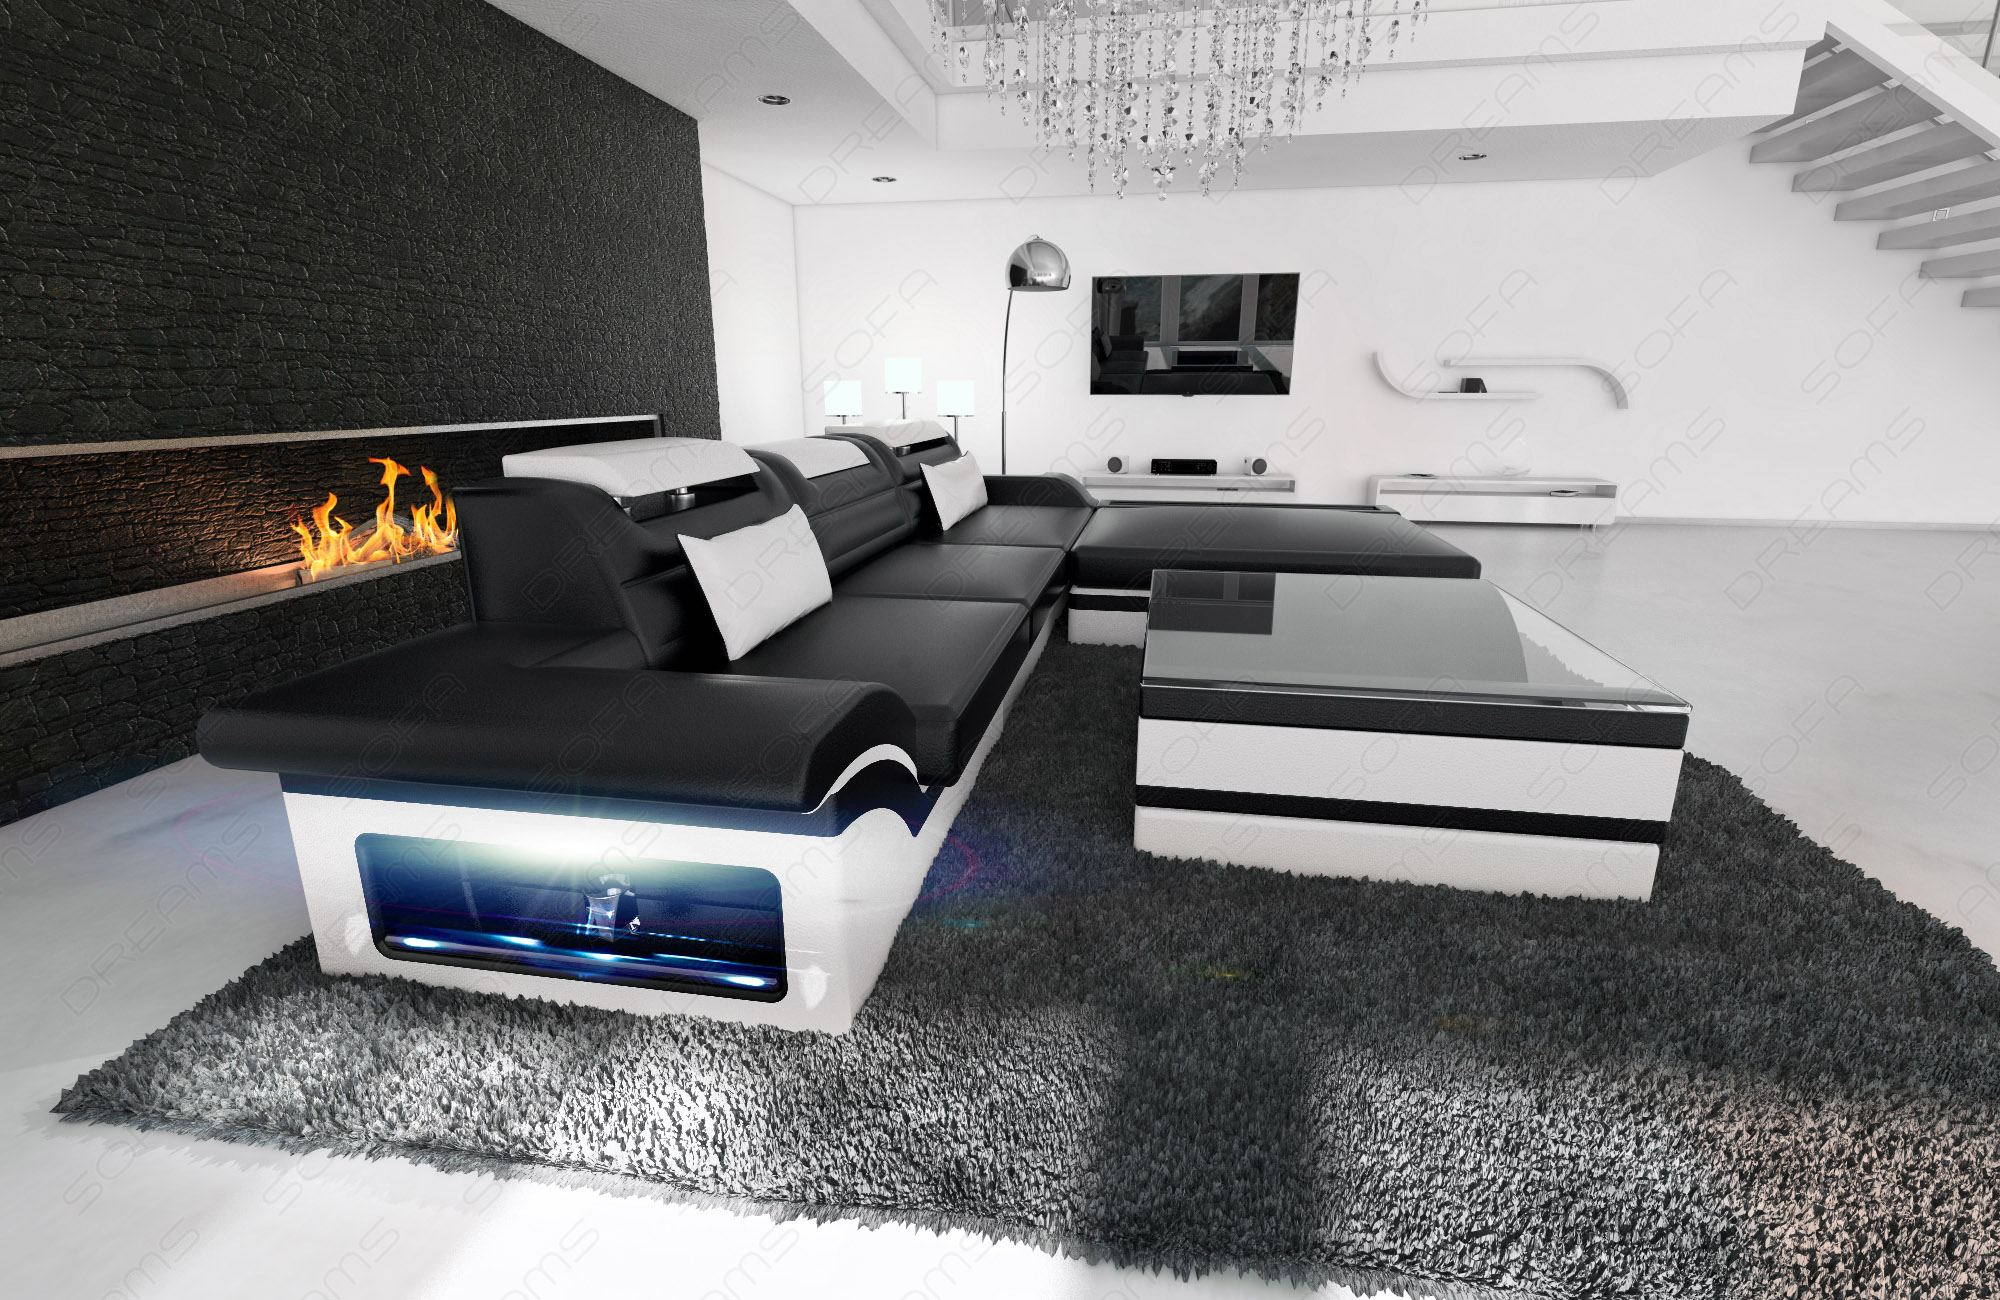 ledersofa designcouch parma l form couch schwarz weiss ottomane led beleuchtung ebay. Black Bedroom Furniture Sets. Home Design Ideas